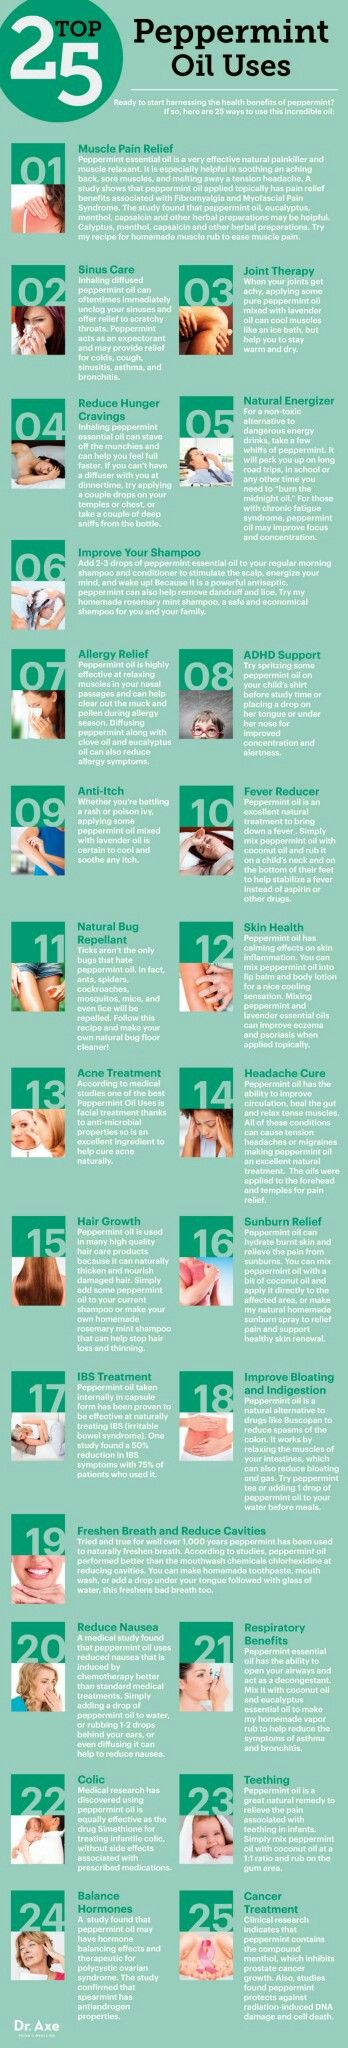 Top 25 ways to use peppermint oil